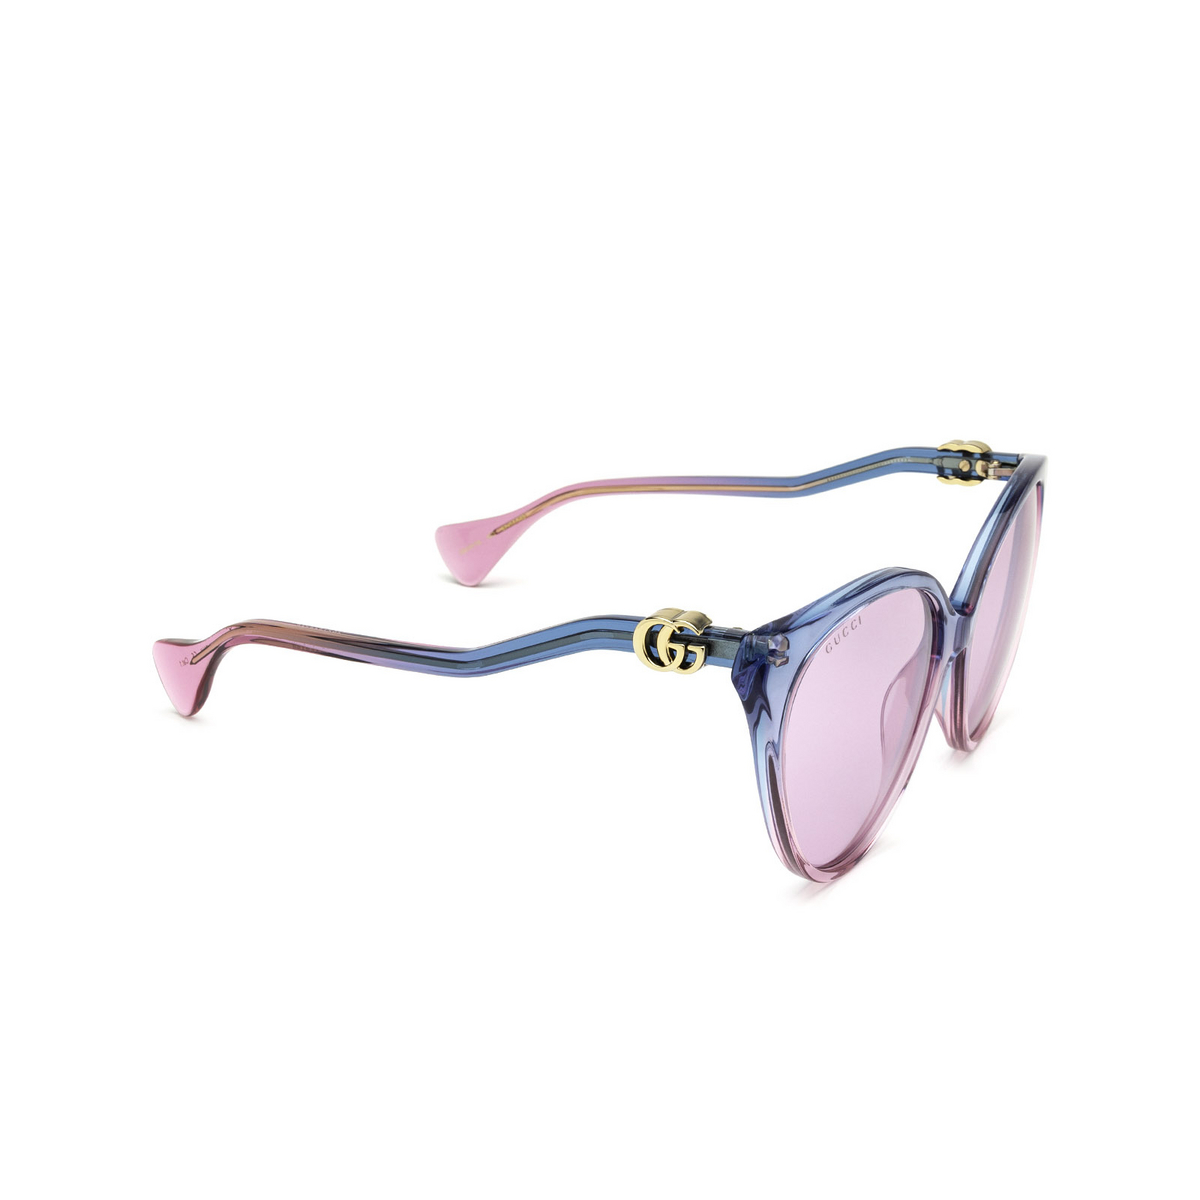 Gucci® Cat-eye Sunglasses: GG1011S color Blue & Pink 003 - three-quarters view.